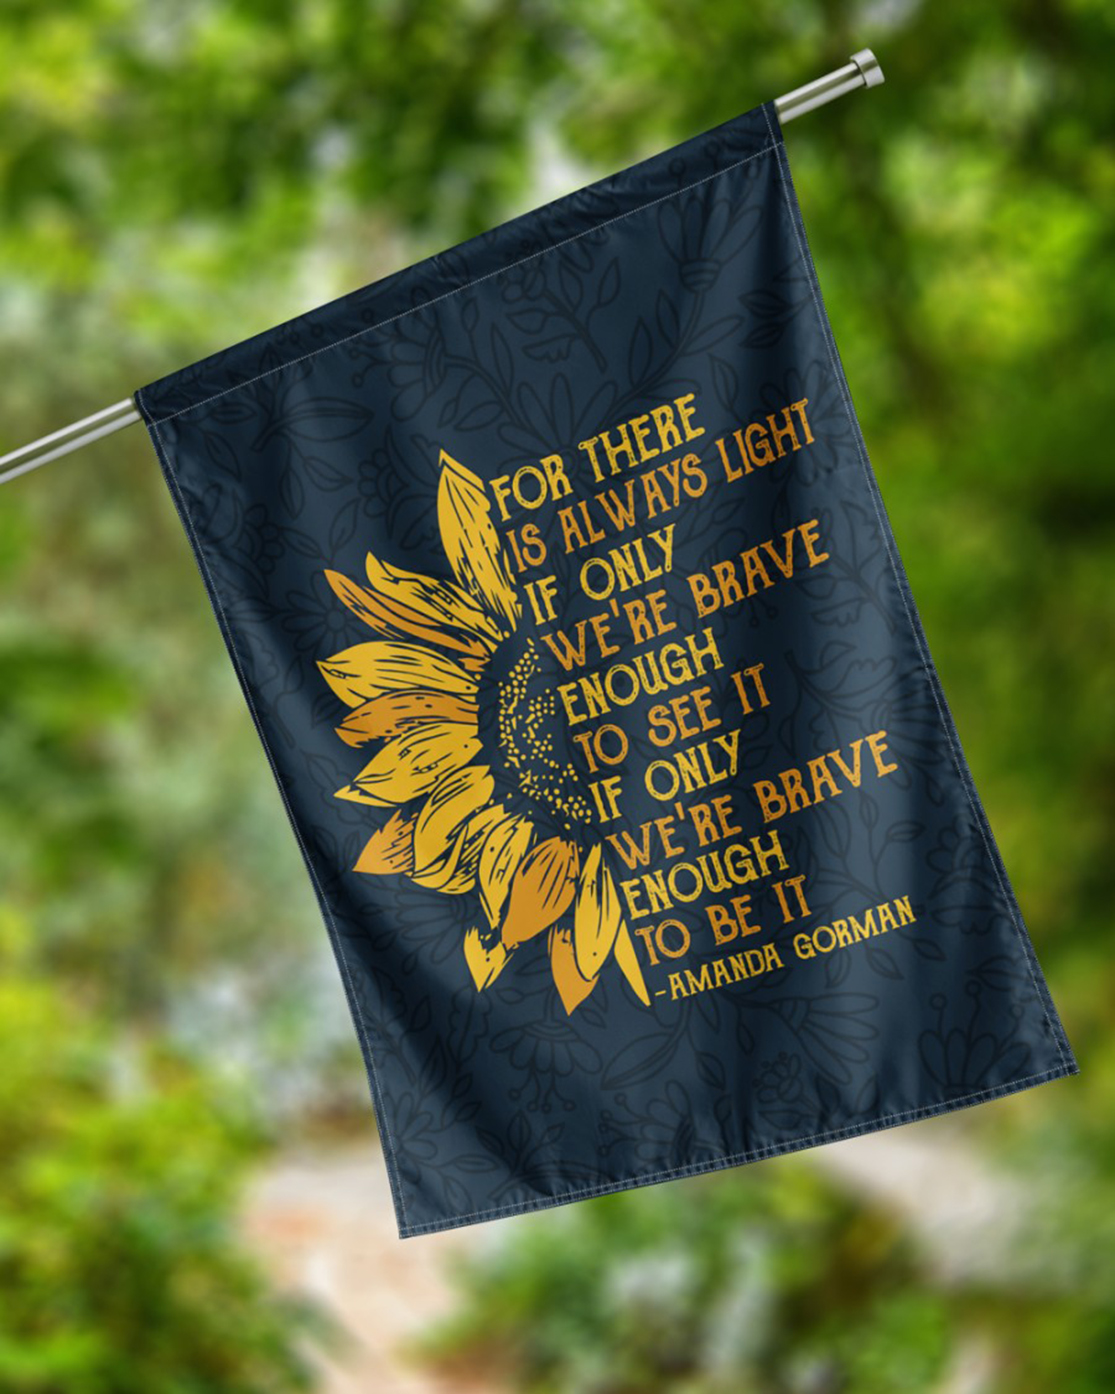 Amanda Gorman For there is always light sunflower flag - Picture 2